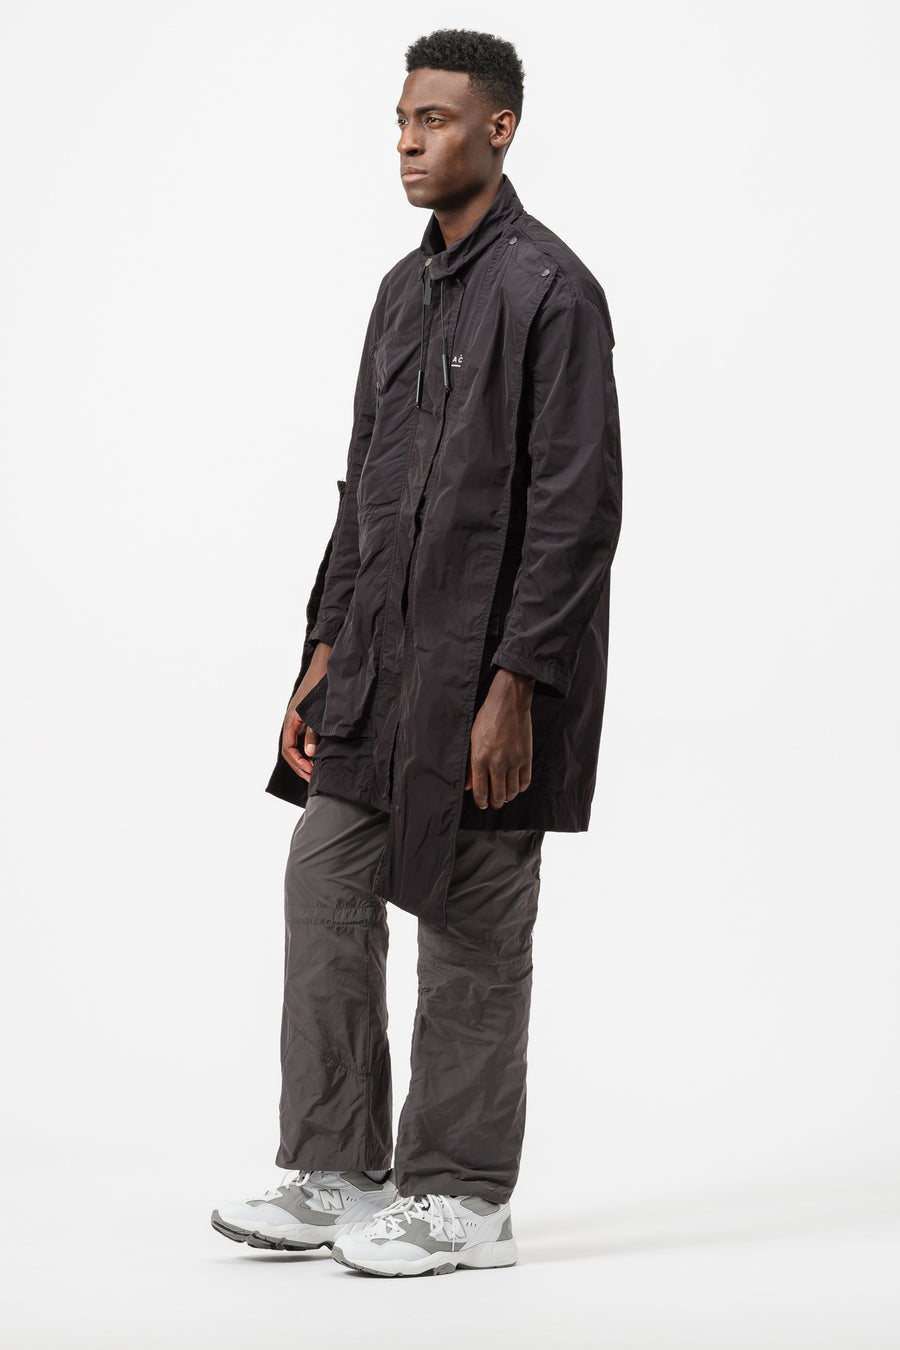 A-COLD-WALL* Multipanel Coat in Black - Notre